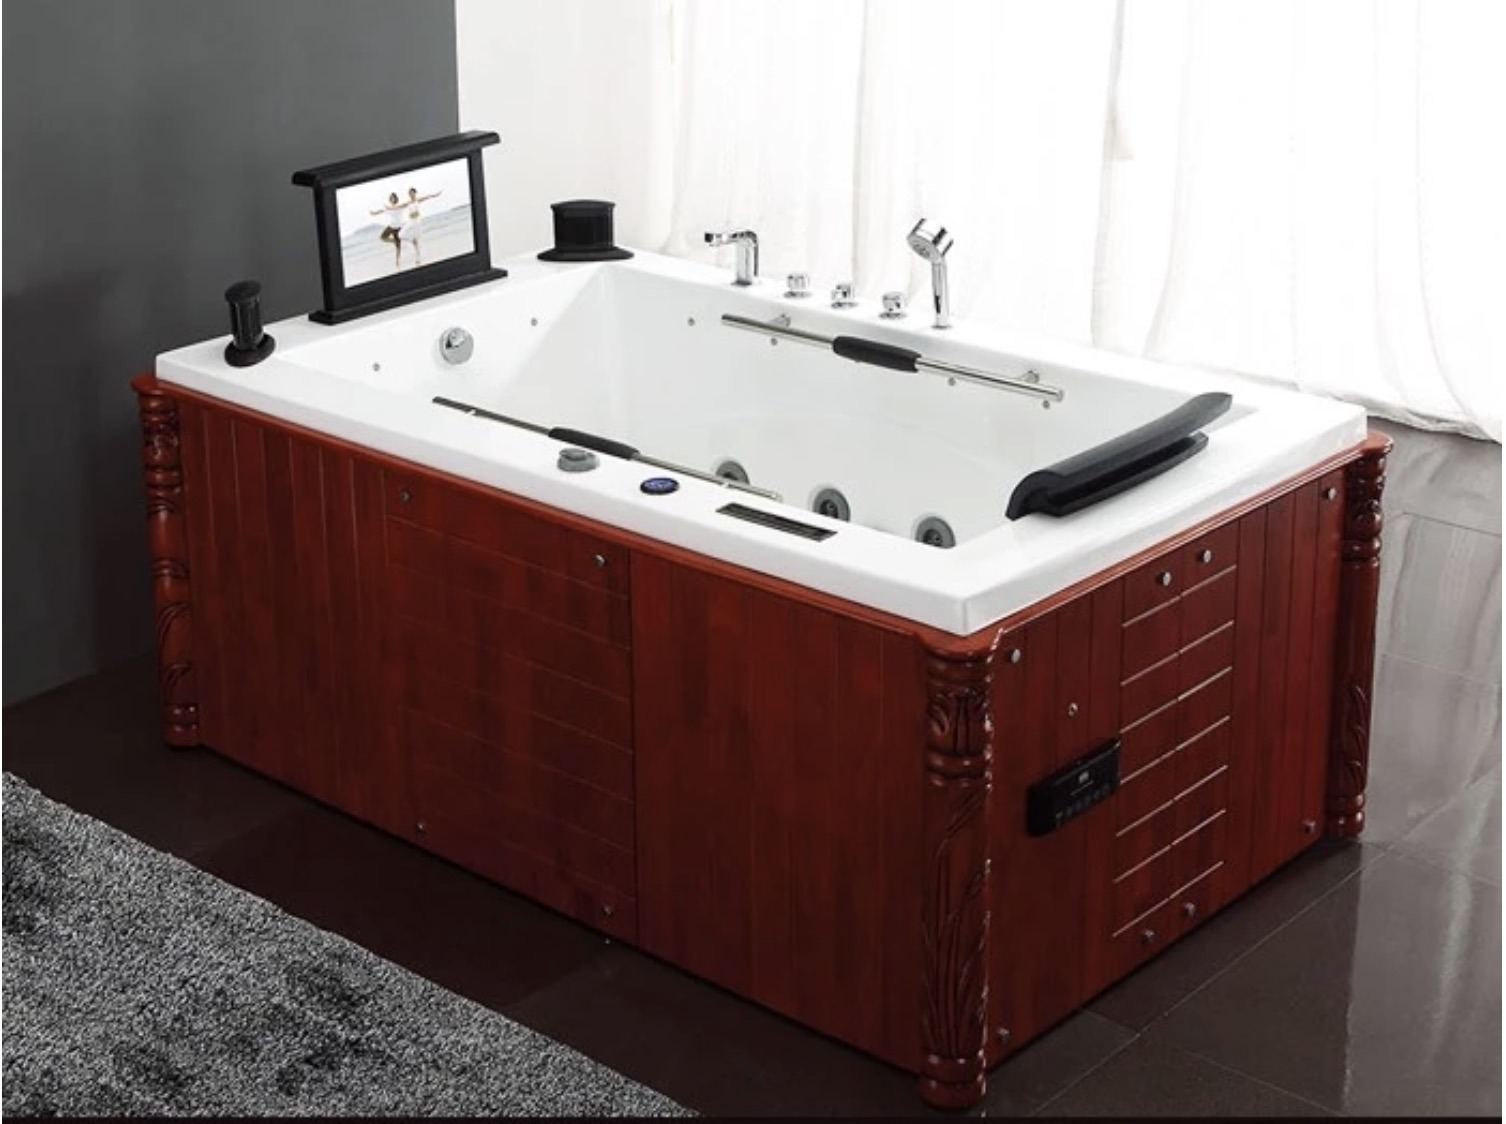 China Indoor One Person Hot Tub Massage Bathtubs With Pop Up Speaker China Massage Bathtubs Bathtub Price